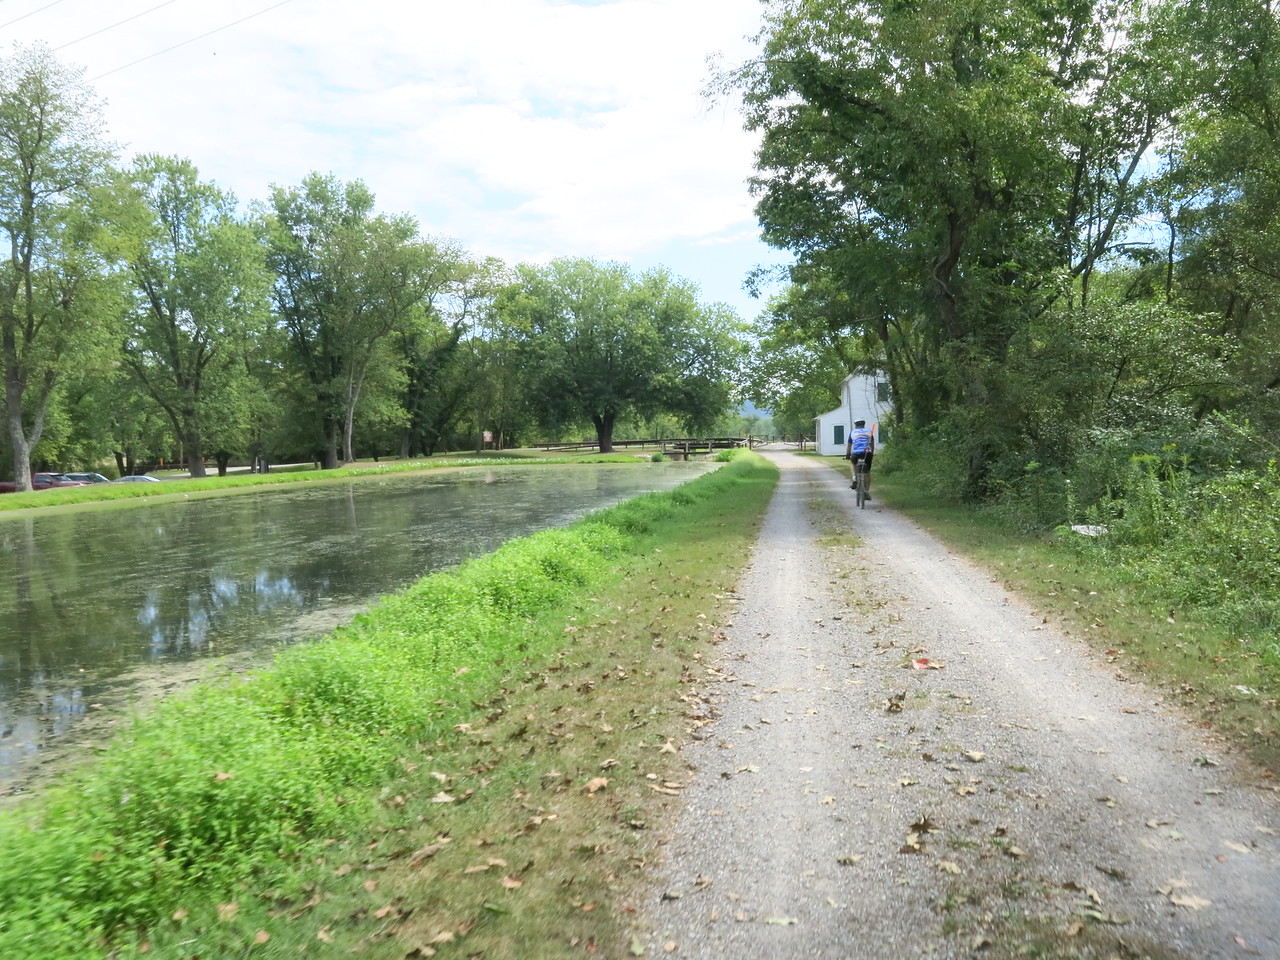 Approaching Lock 70 at MP 166.7